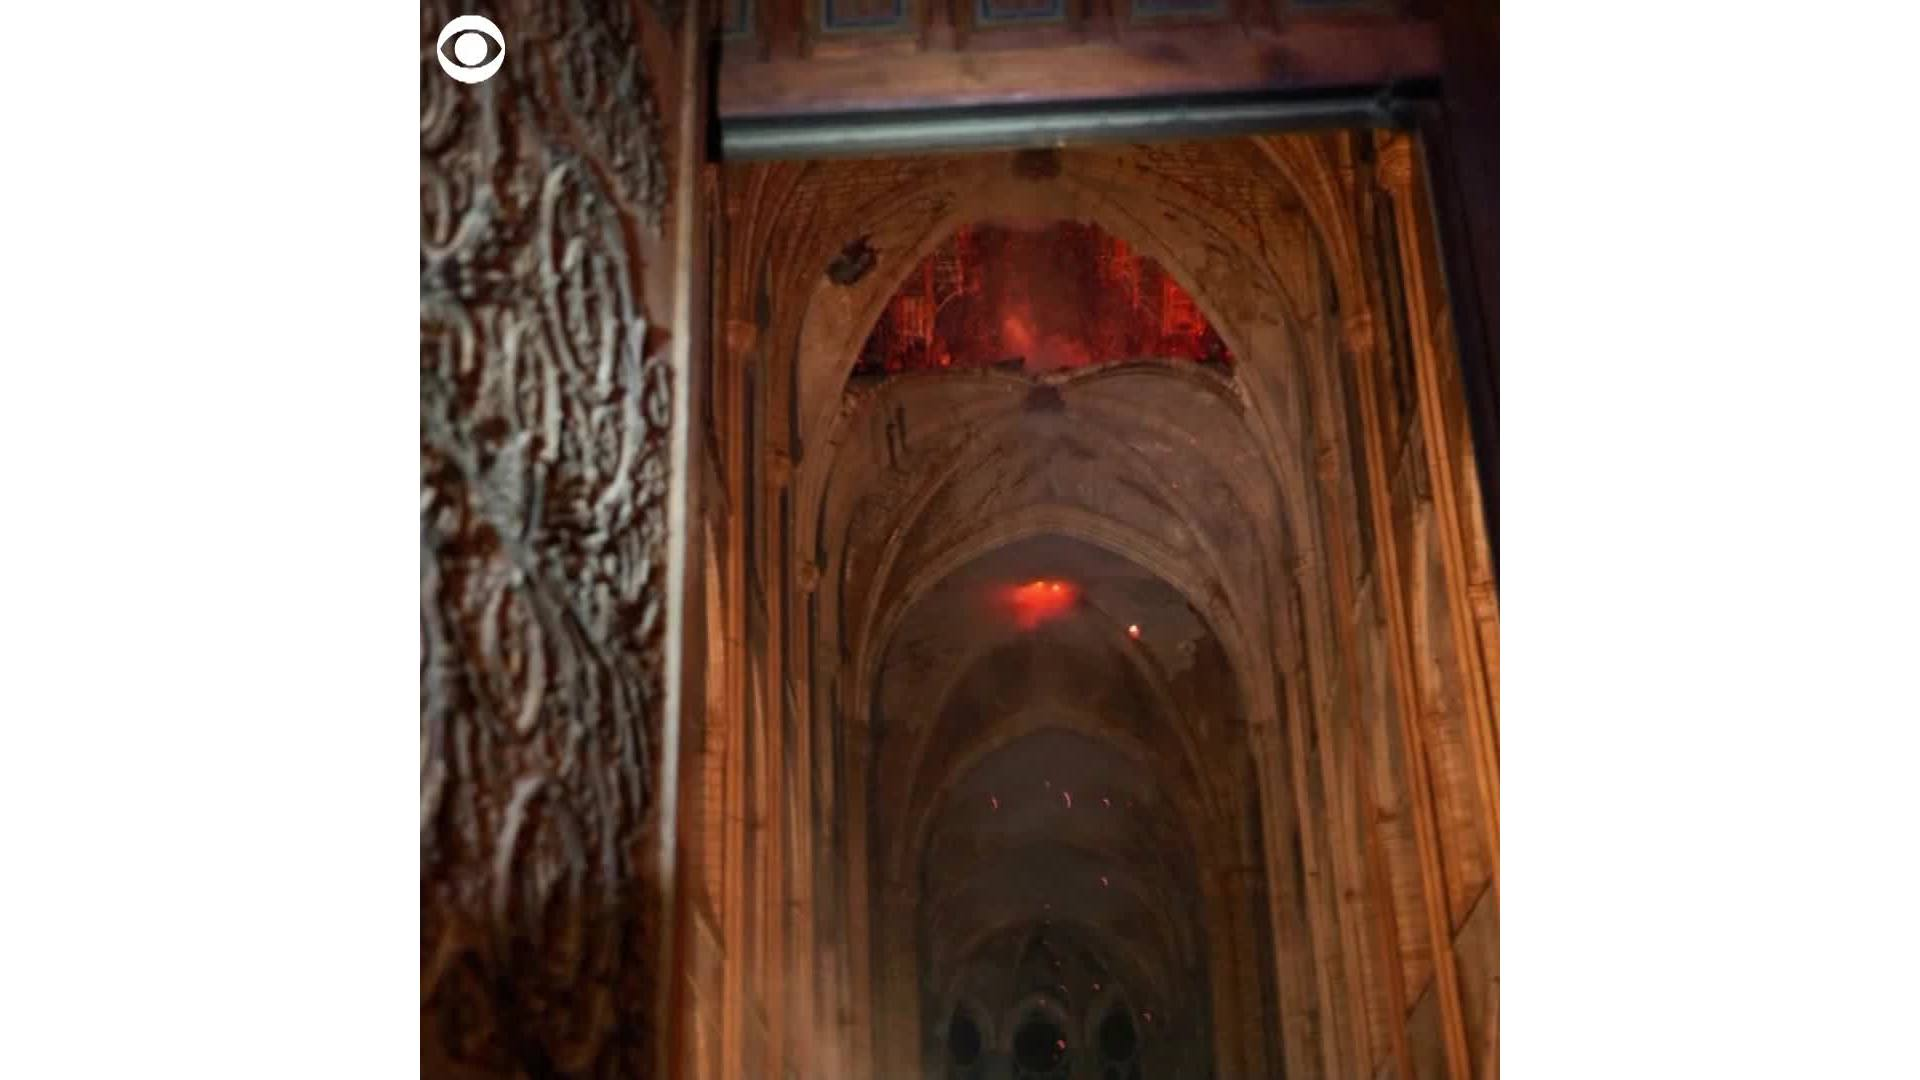 Images from inside the Notre Dame Cathedral